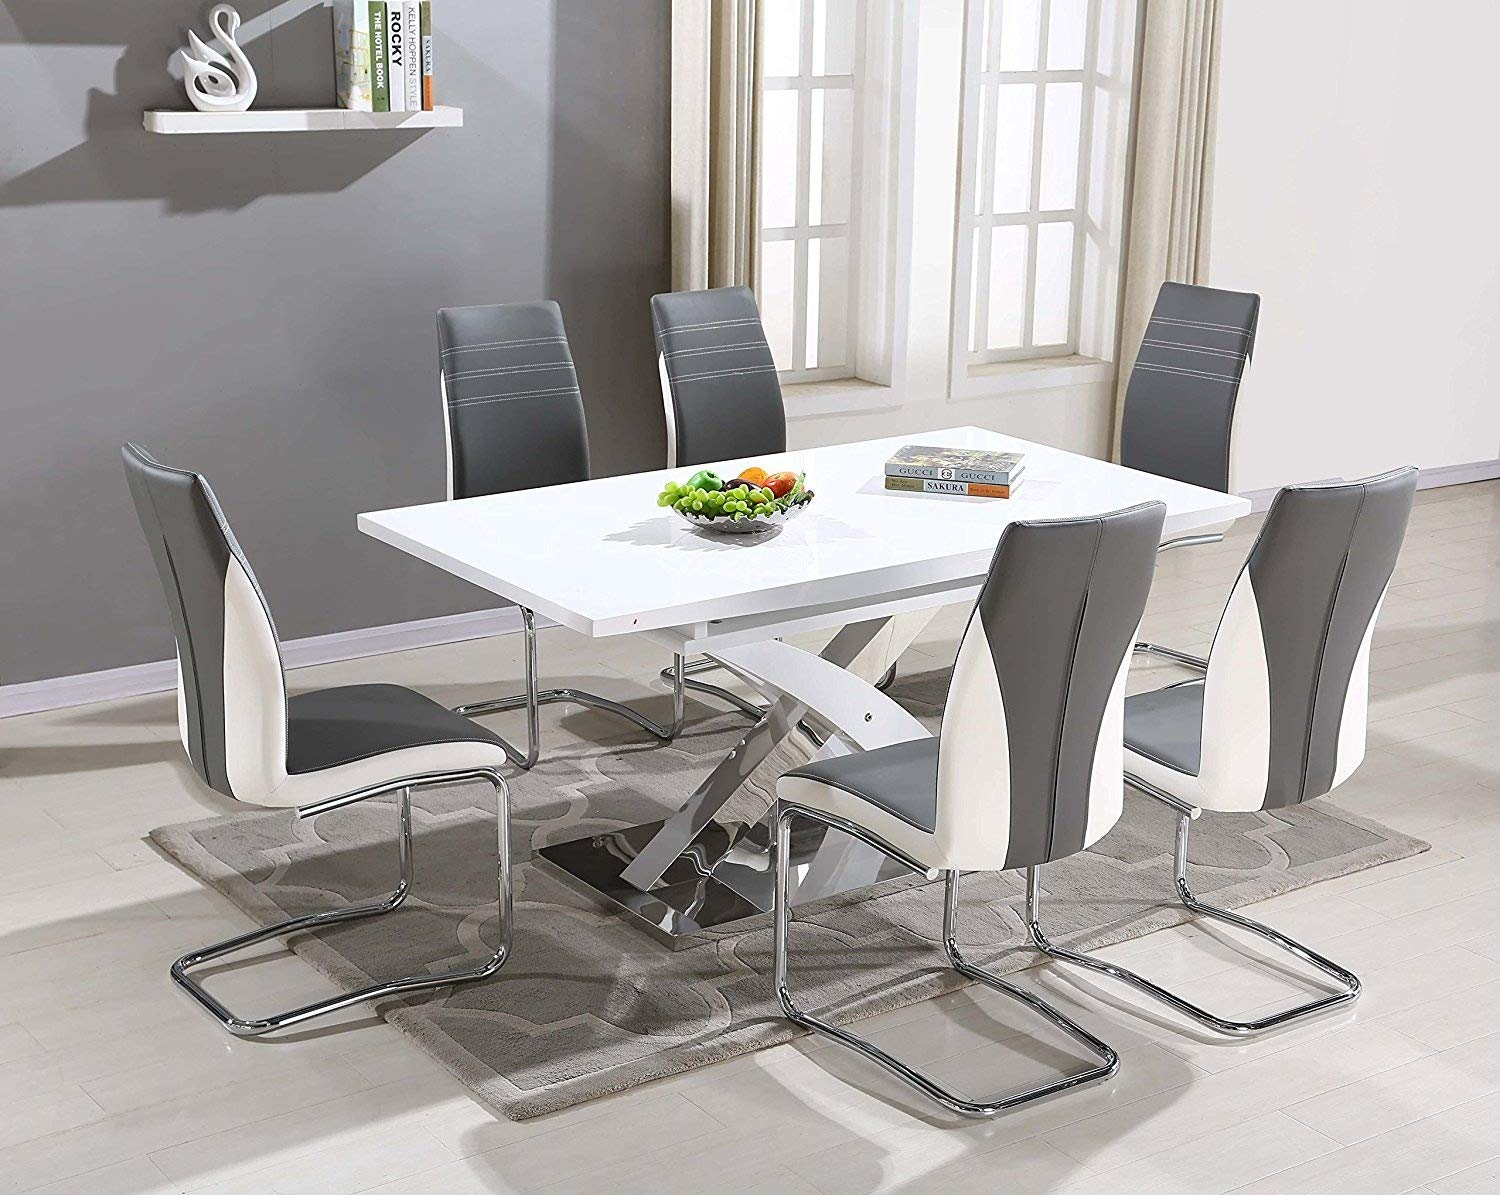 Astonishing Pescara Dining Table Set And 4 6 8 Upholstered Padded Grey And White Faux Leather Chairs By Furnitureone Table 6 Chairs Download Free Architecture Designs Scobabritishbridgeorg